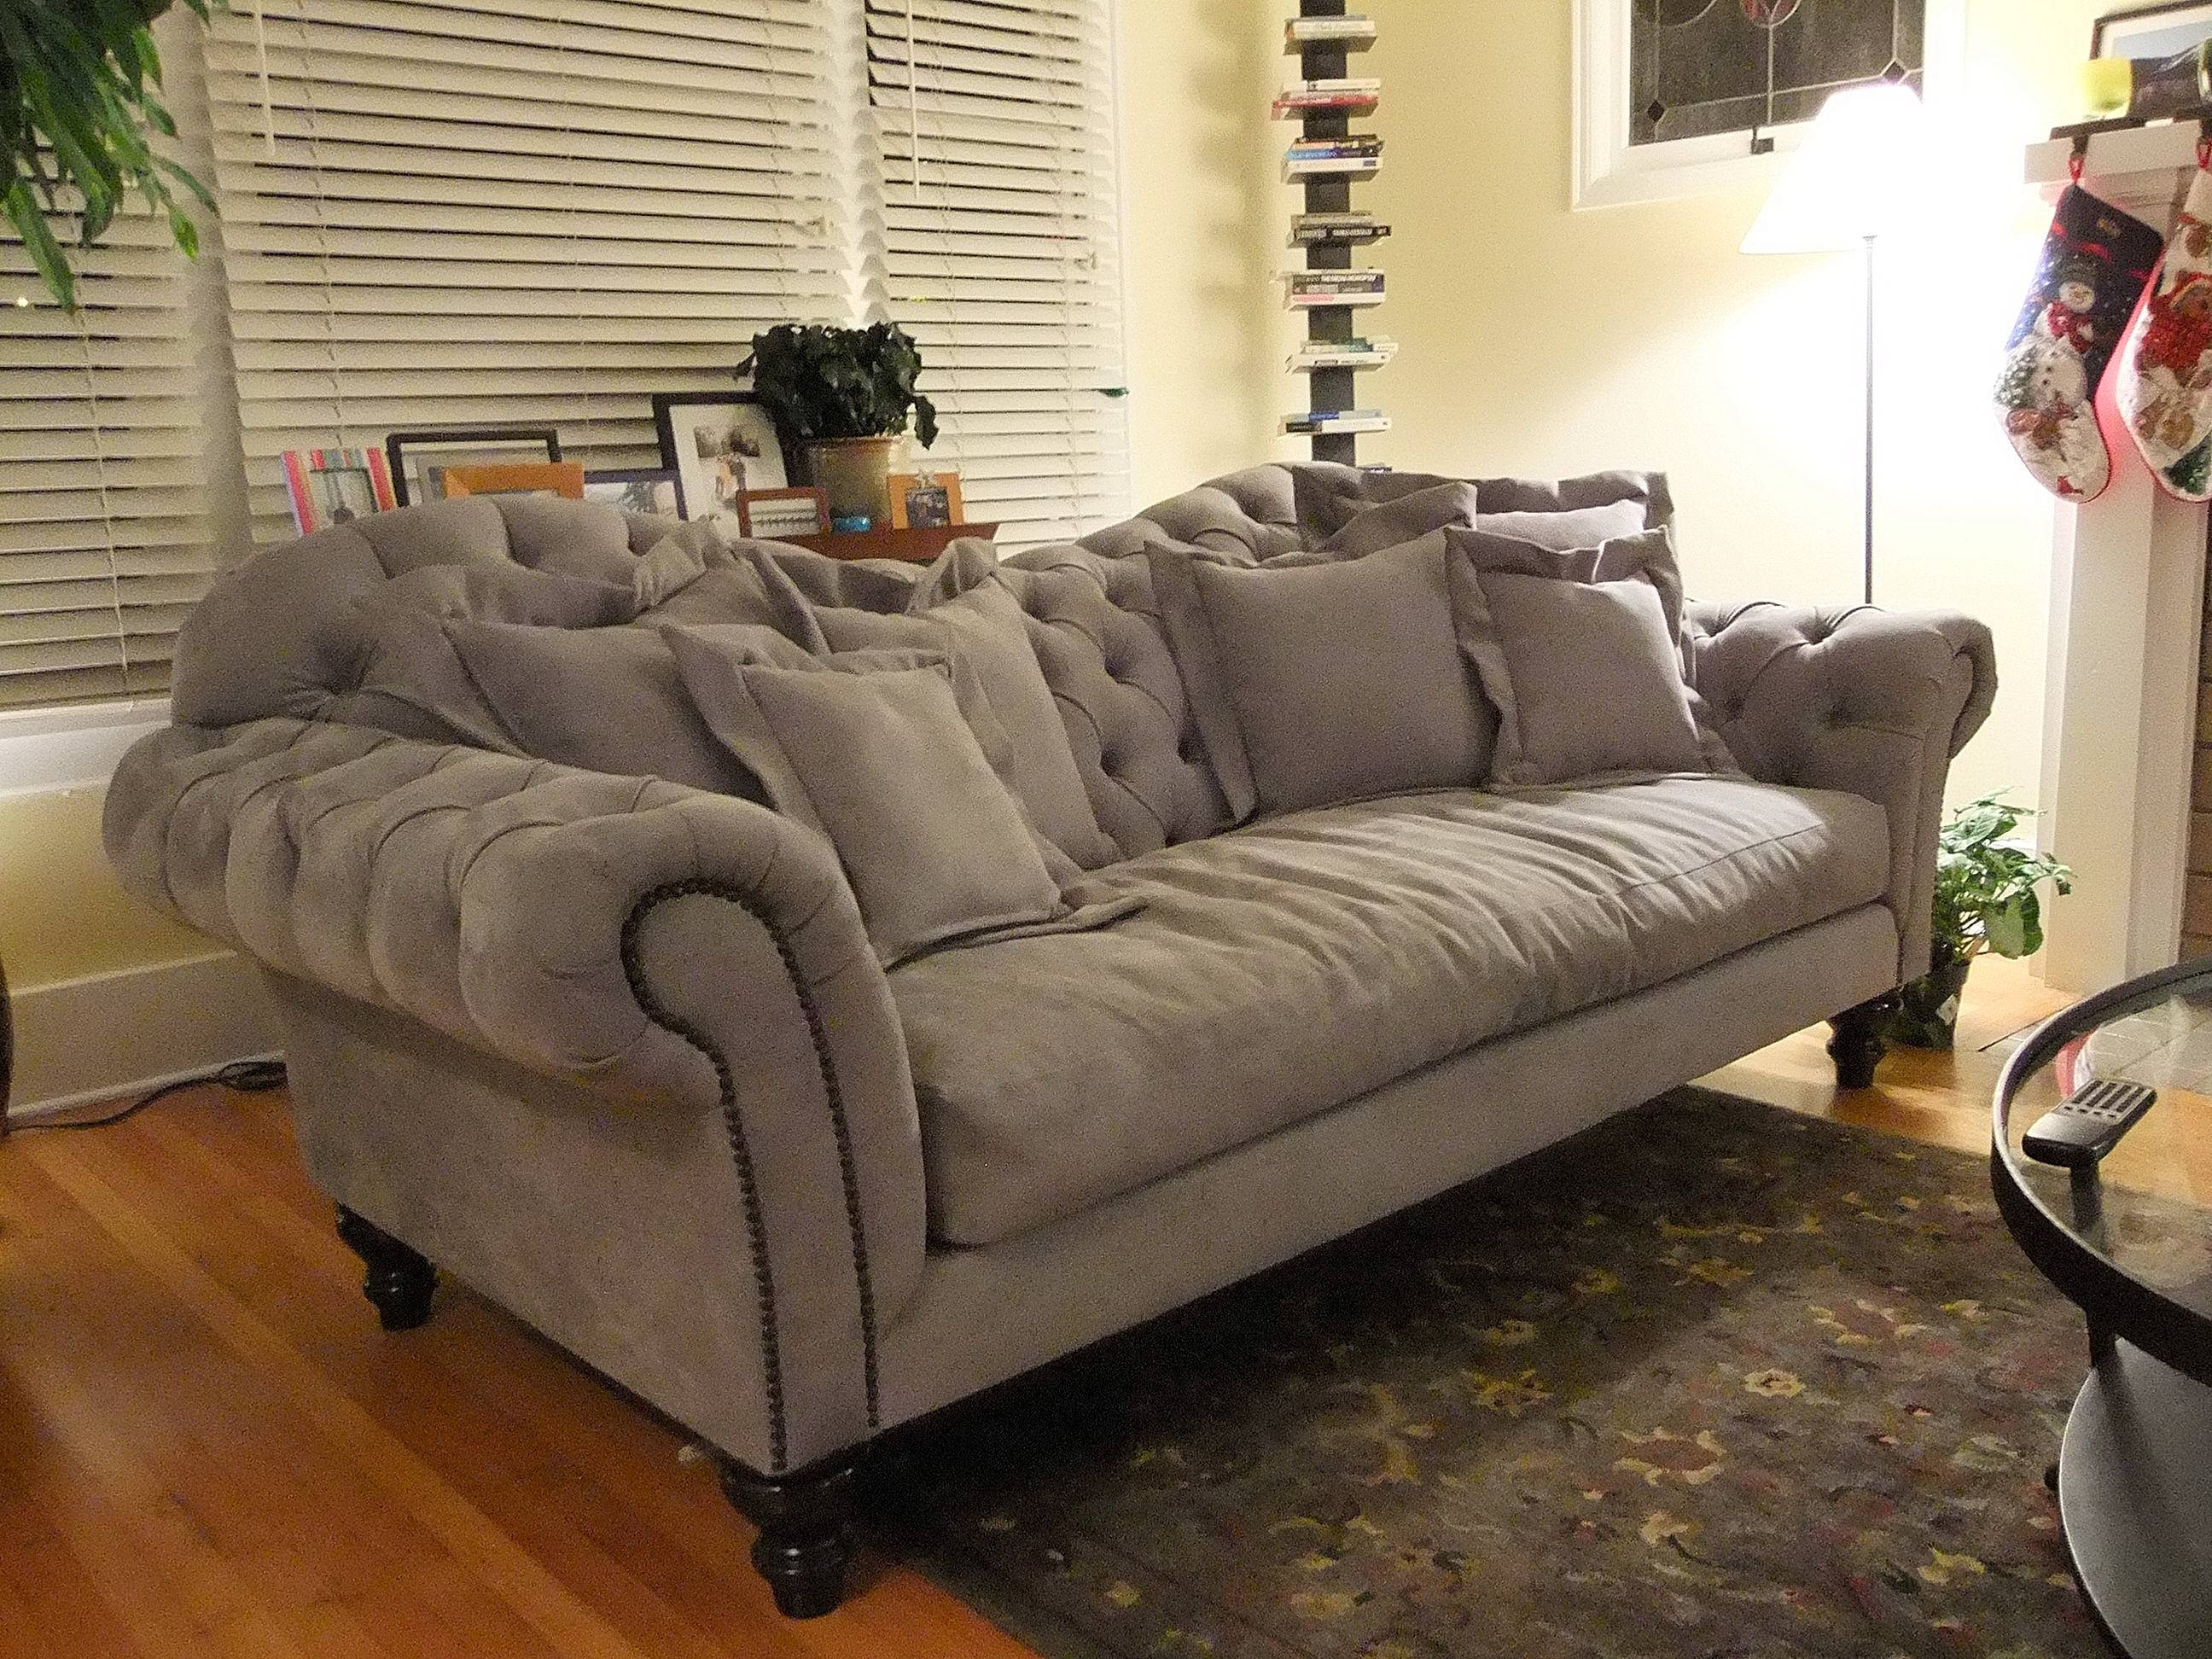 Couch Seattle | Custom To The Inch Seating At Non-Custom Pricing pertaining to Sofas With High Backs (Image 2 of 30)